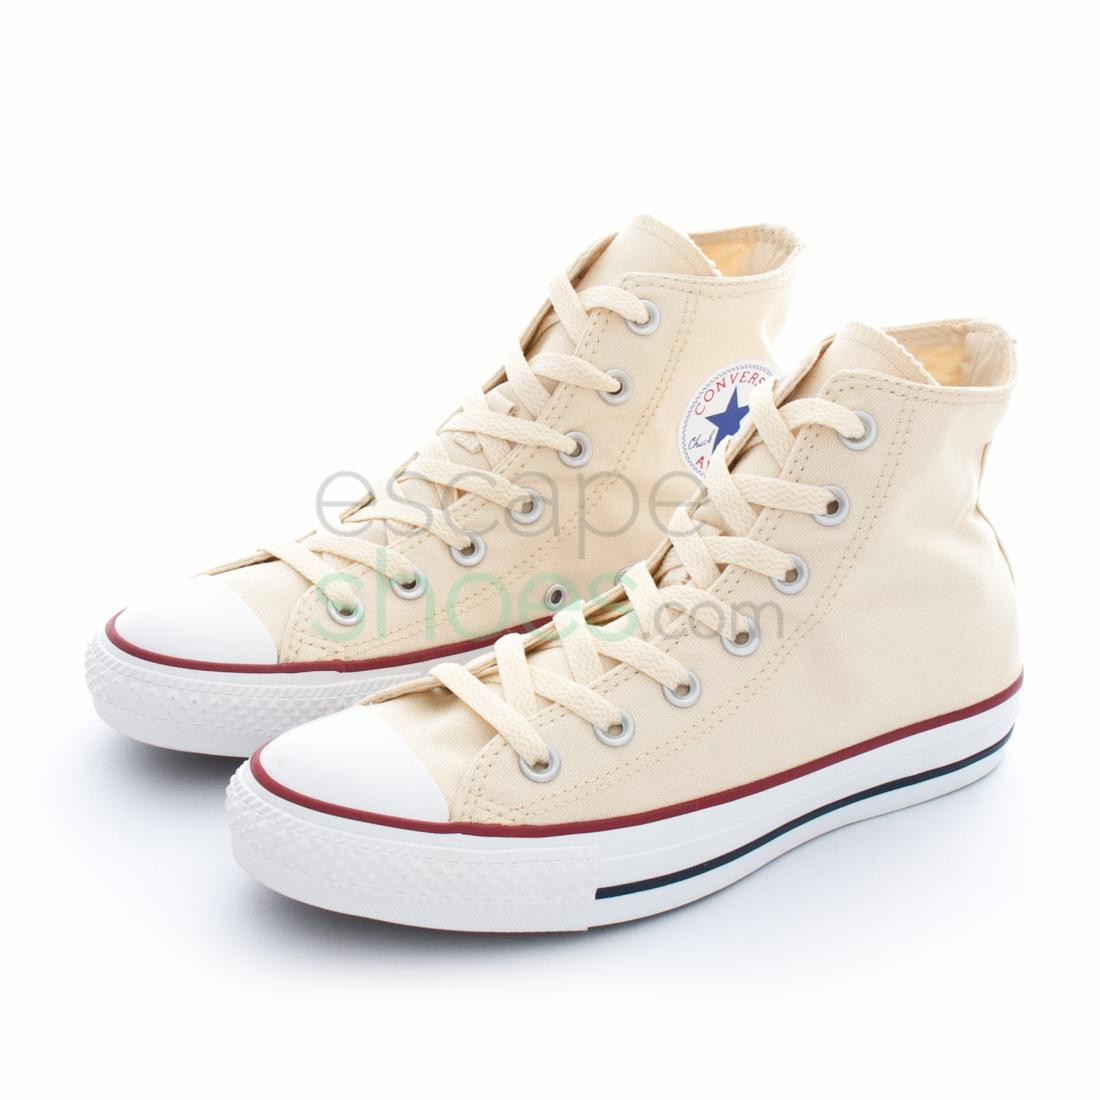 Converse Chuck Taylor All Star Classic 41,5 natural white